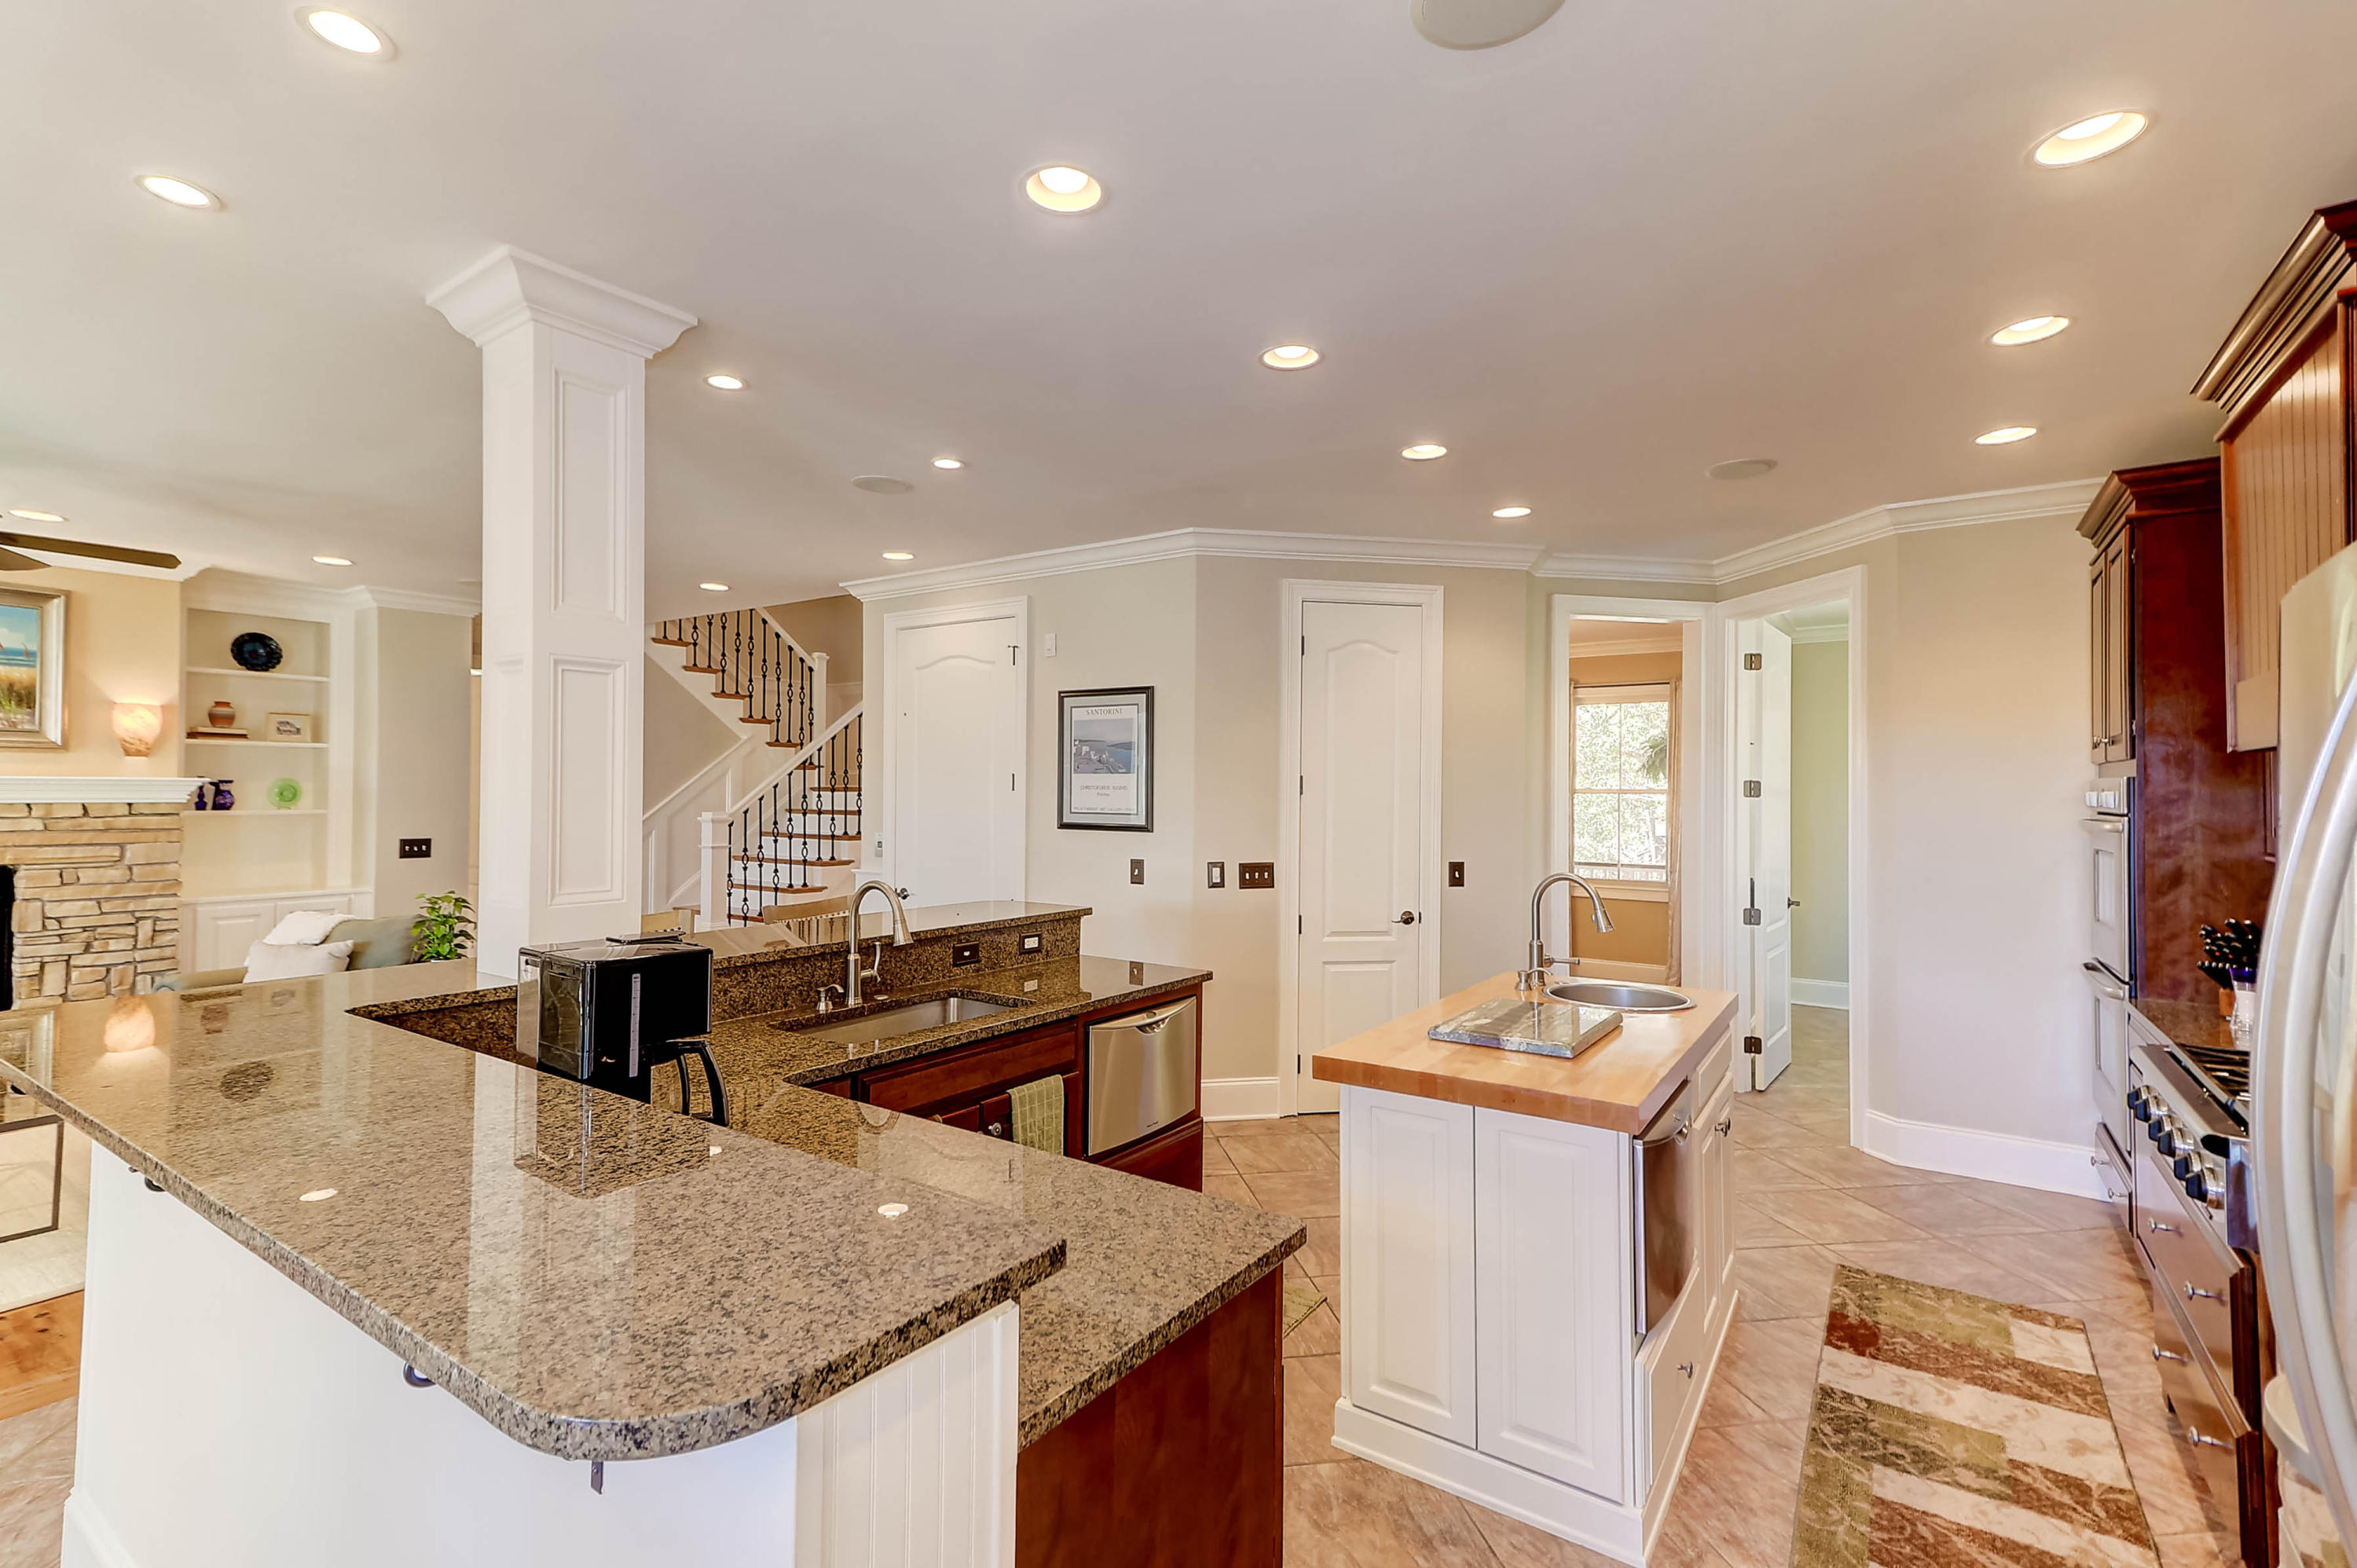 Dunes West Homes For Sale - 1764 Greenspoint, Mount Pleasant, SC - 8